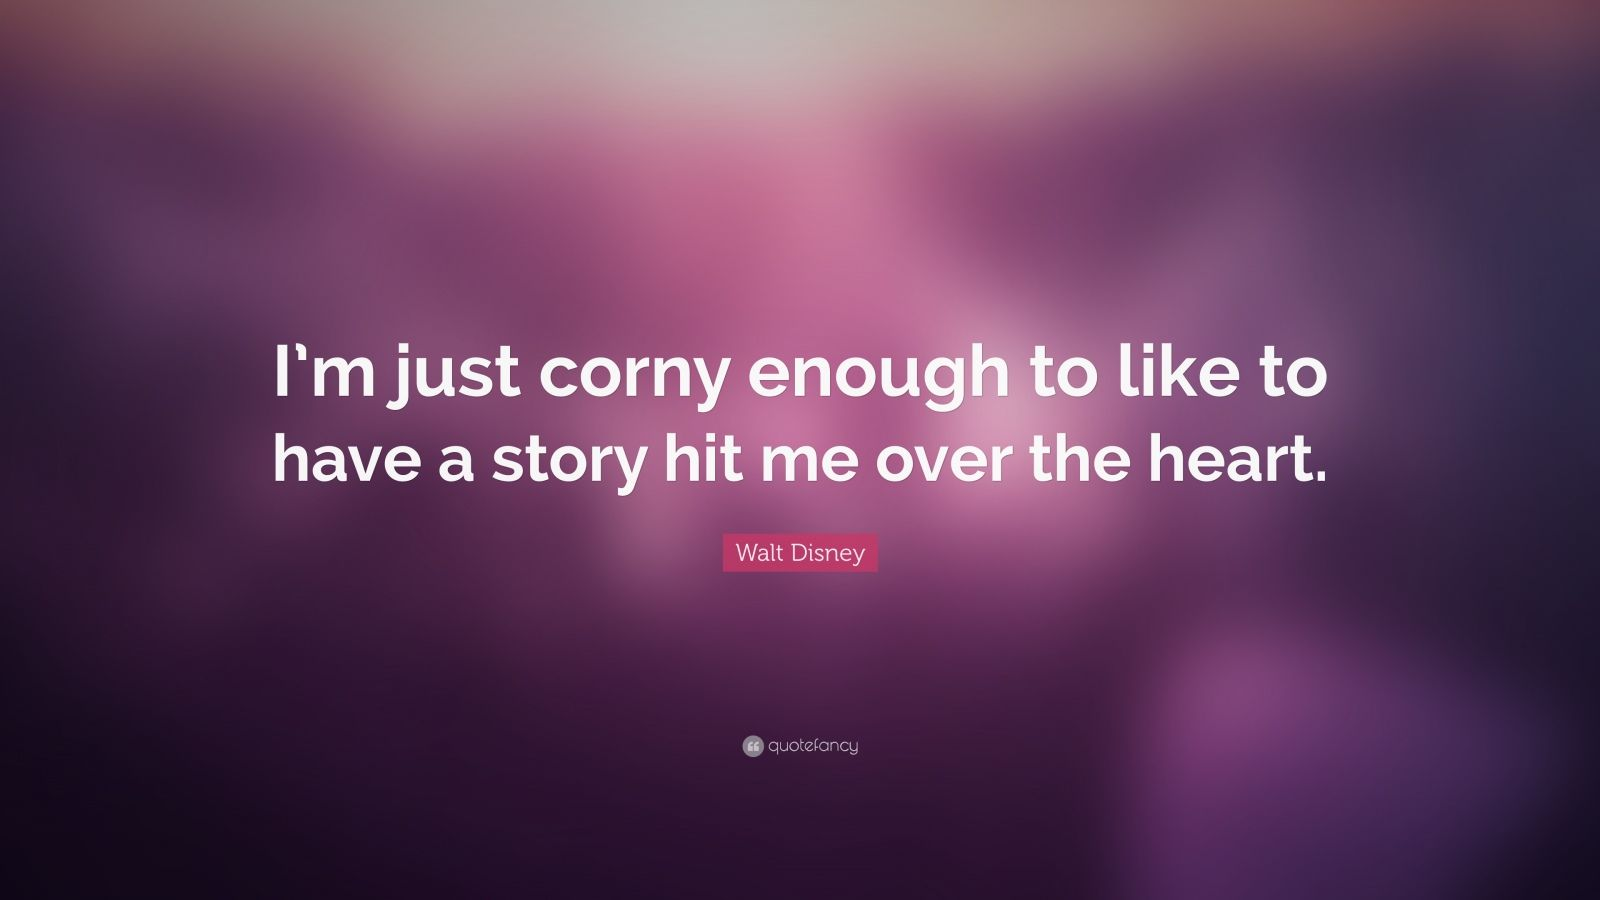 """Walt Disney Quote: """"I'm just corny enough to like to have a story hit me over the heart."""""""